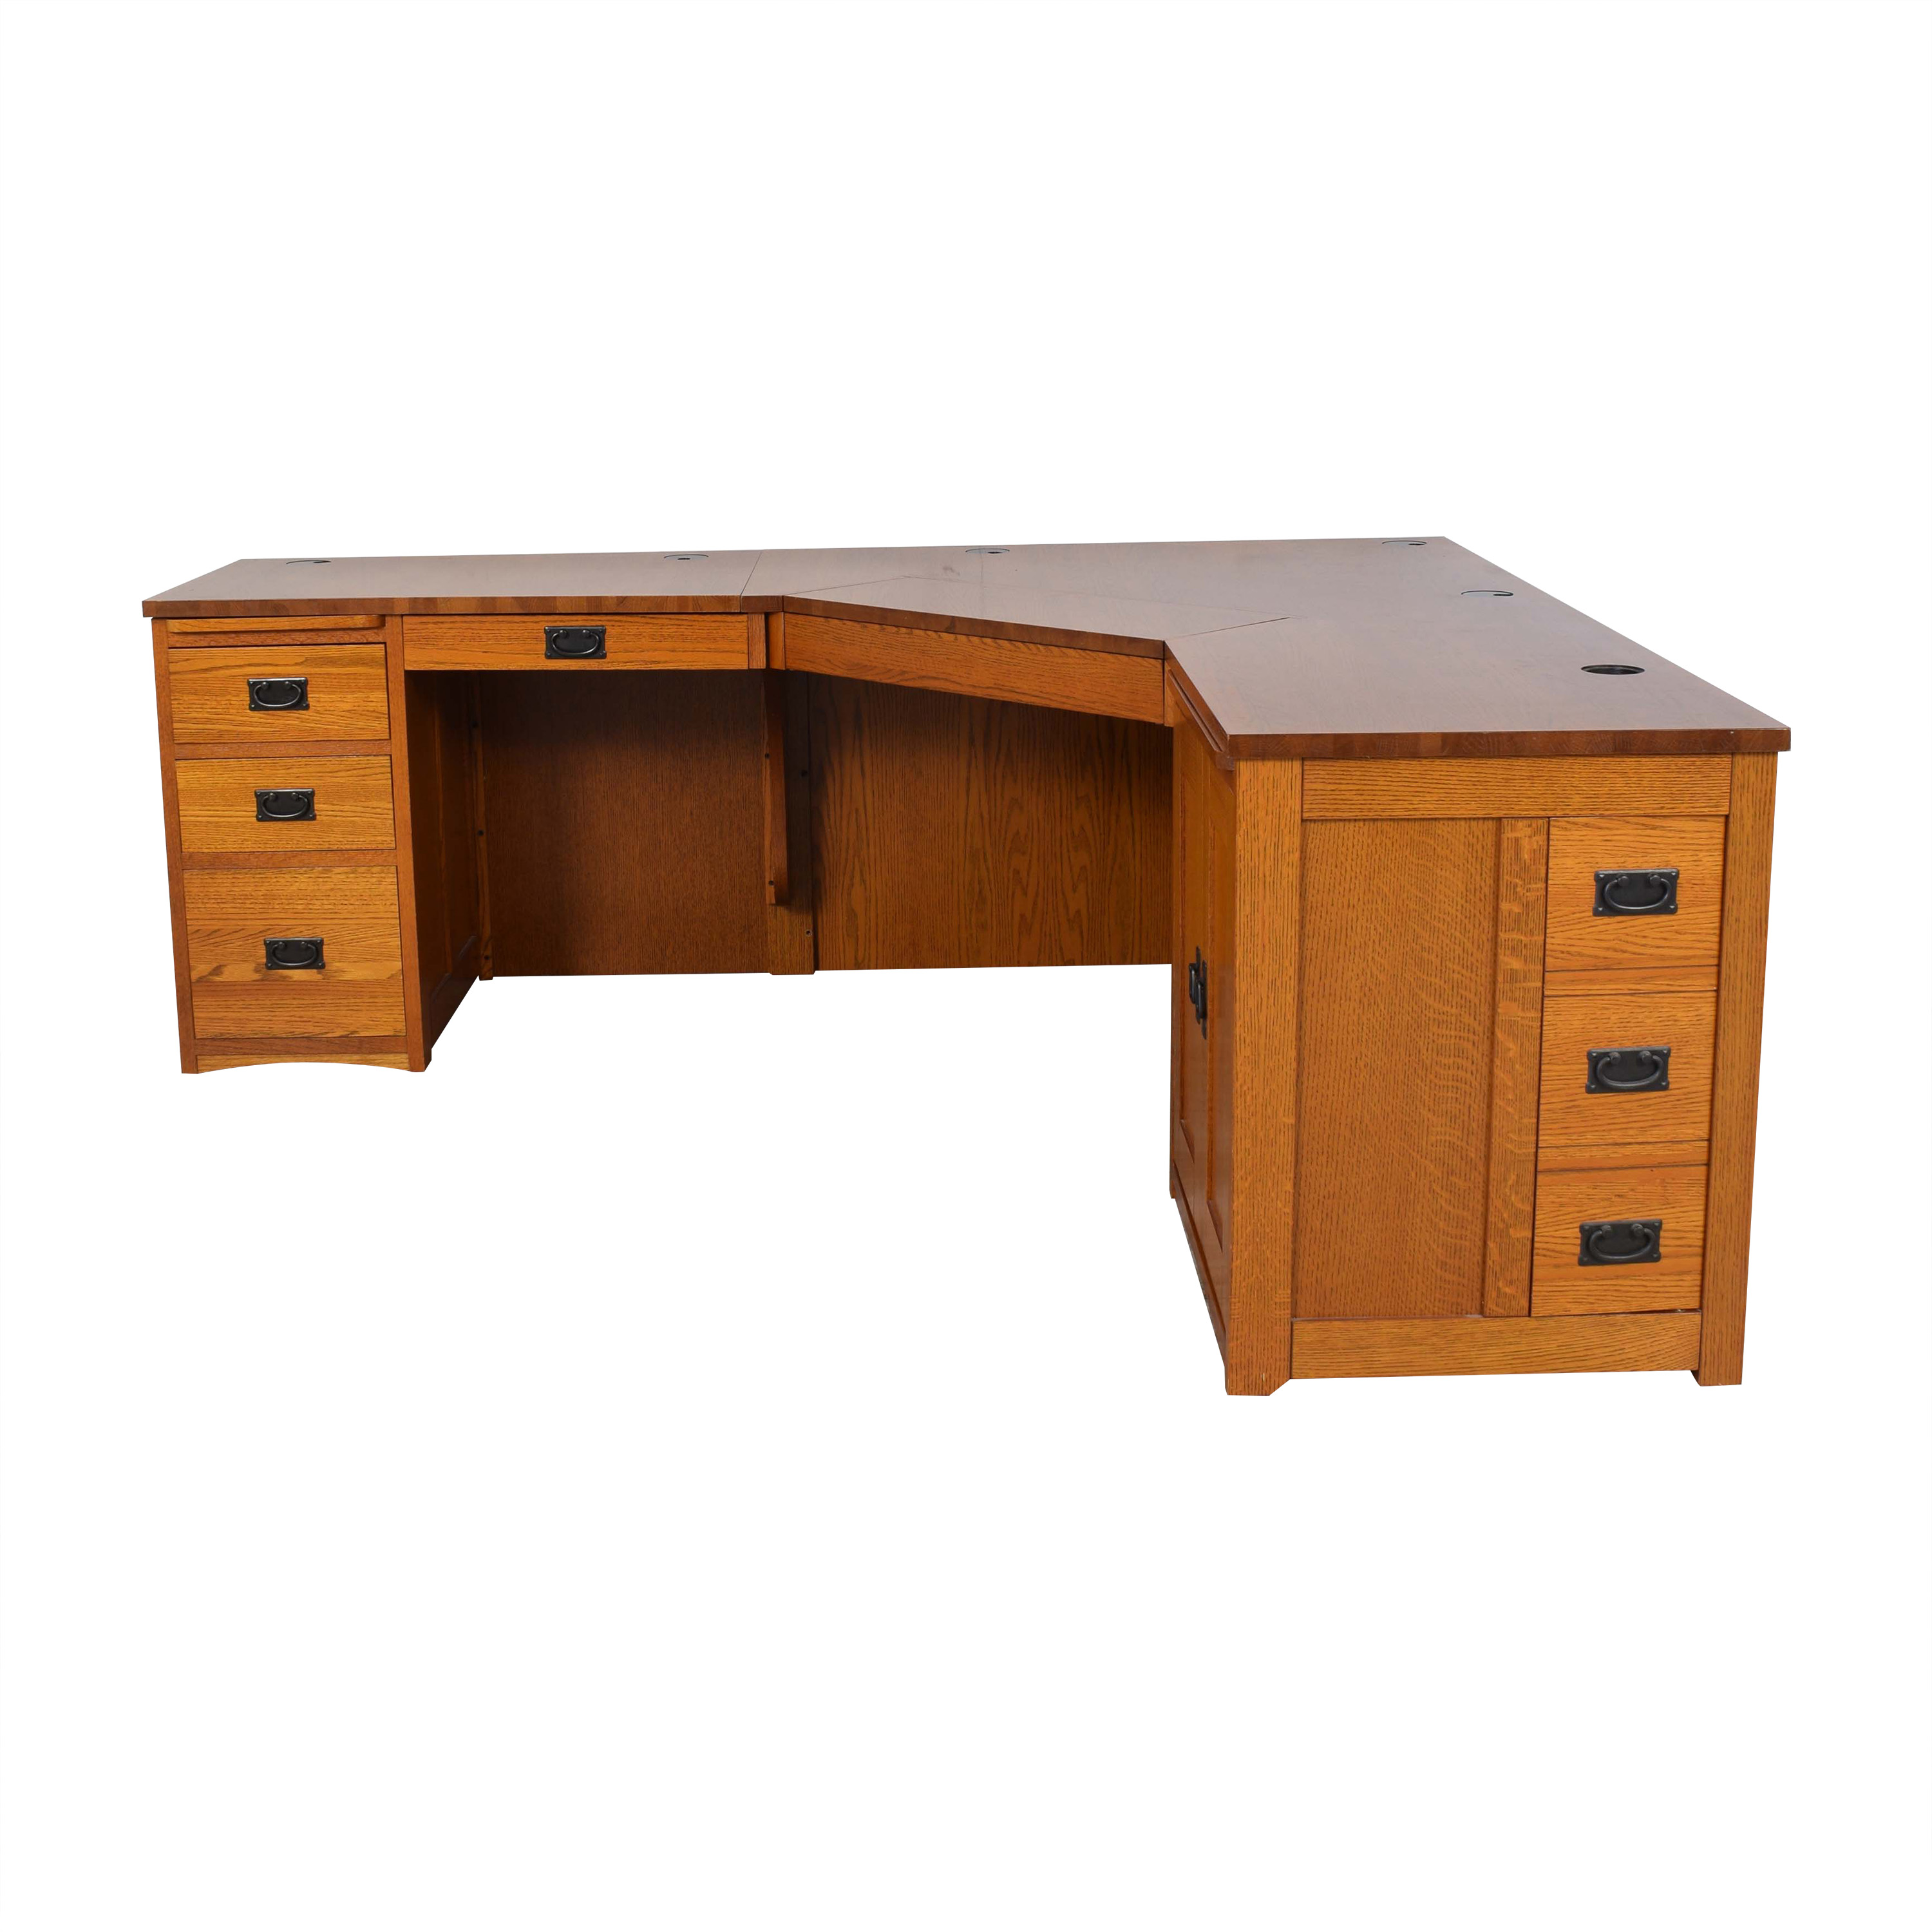 American Woodcrafters American Woodcrafters Mission-Style Desk brown